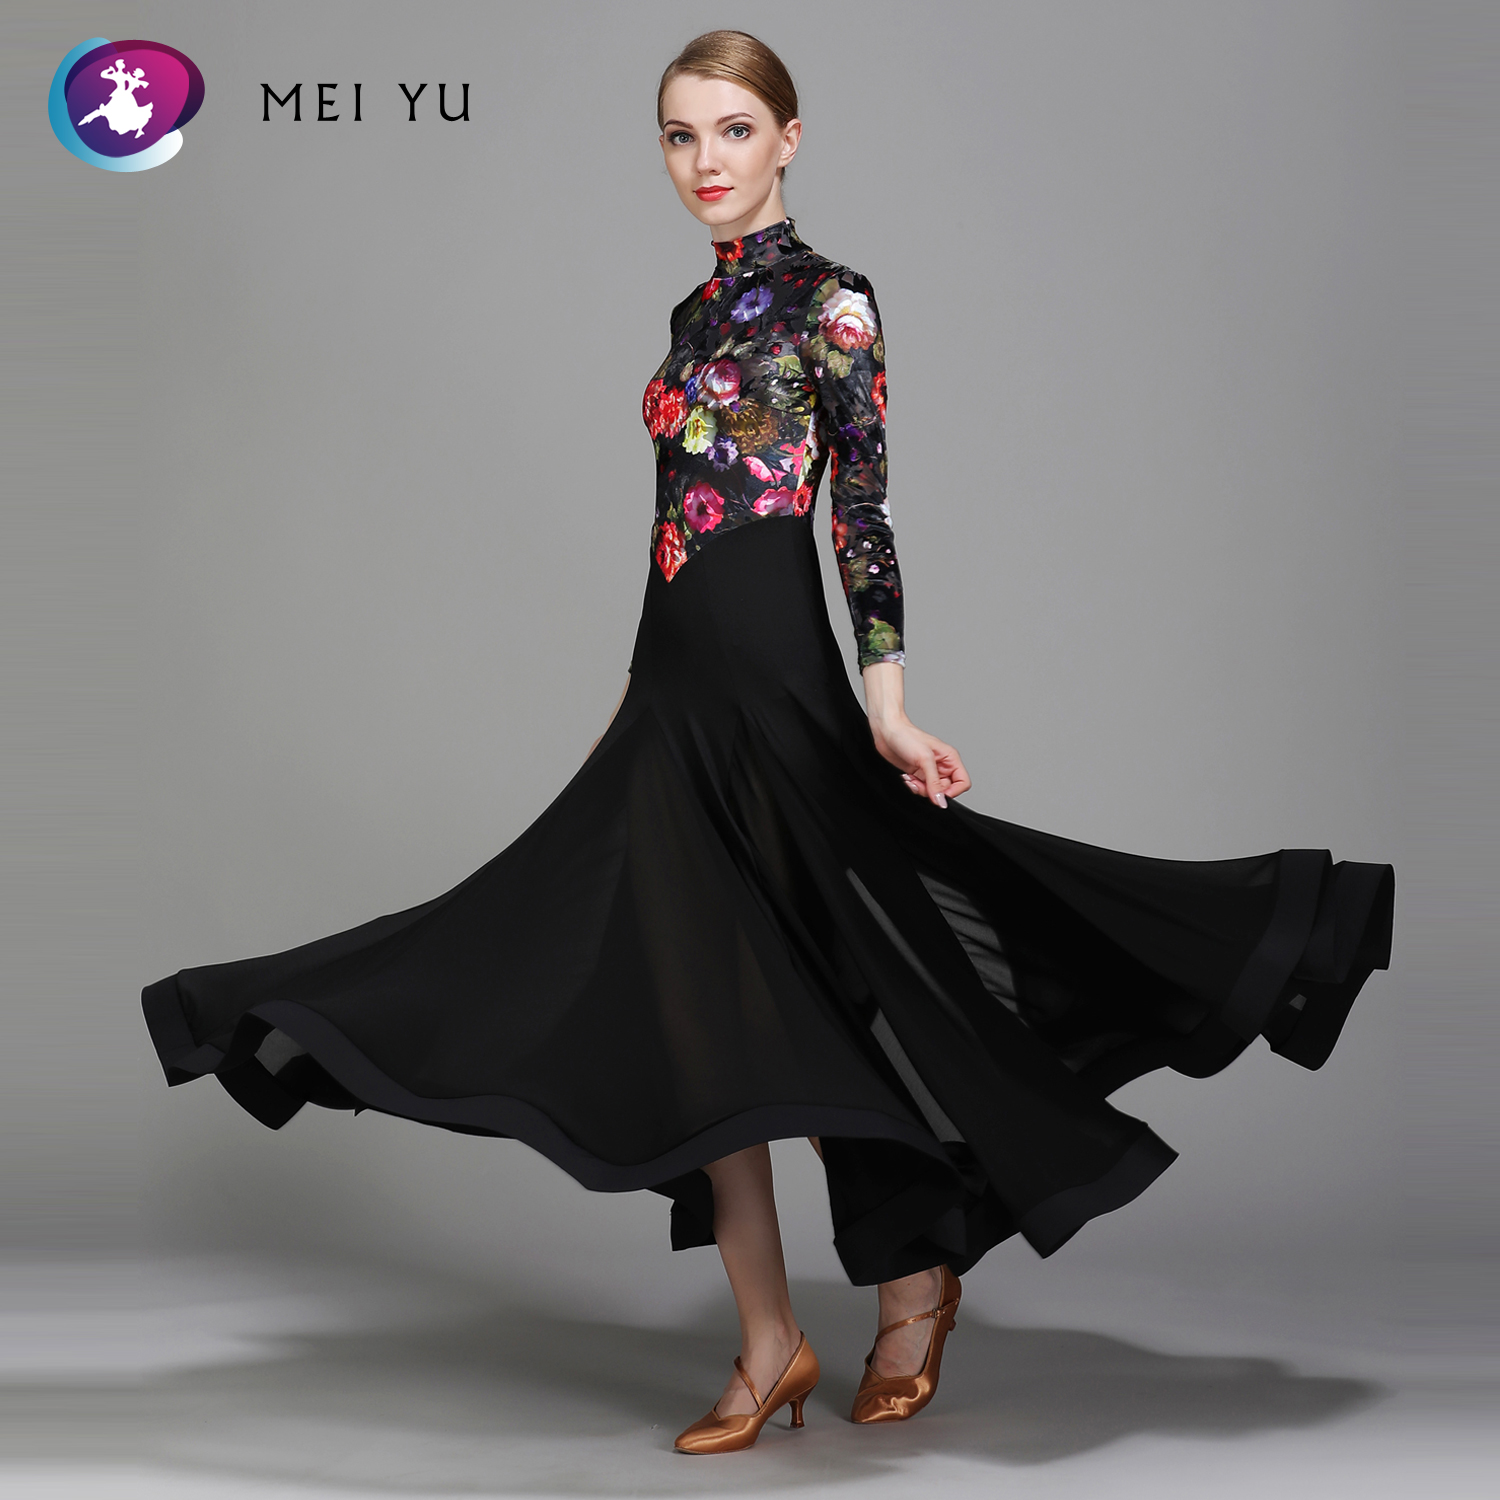 Ballroom Selfless Mei Yu 1731 Modern Dance Costume Women Ladies Adult Dancewear Waltzing Tango Dancing Dress Ballroom Costume Evening Party Dress